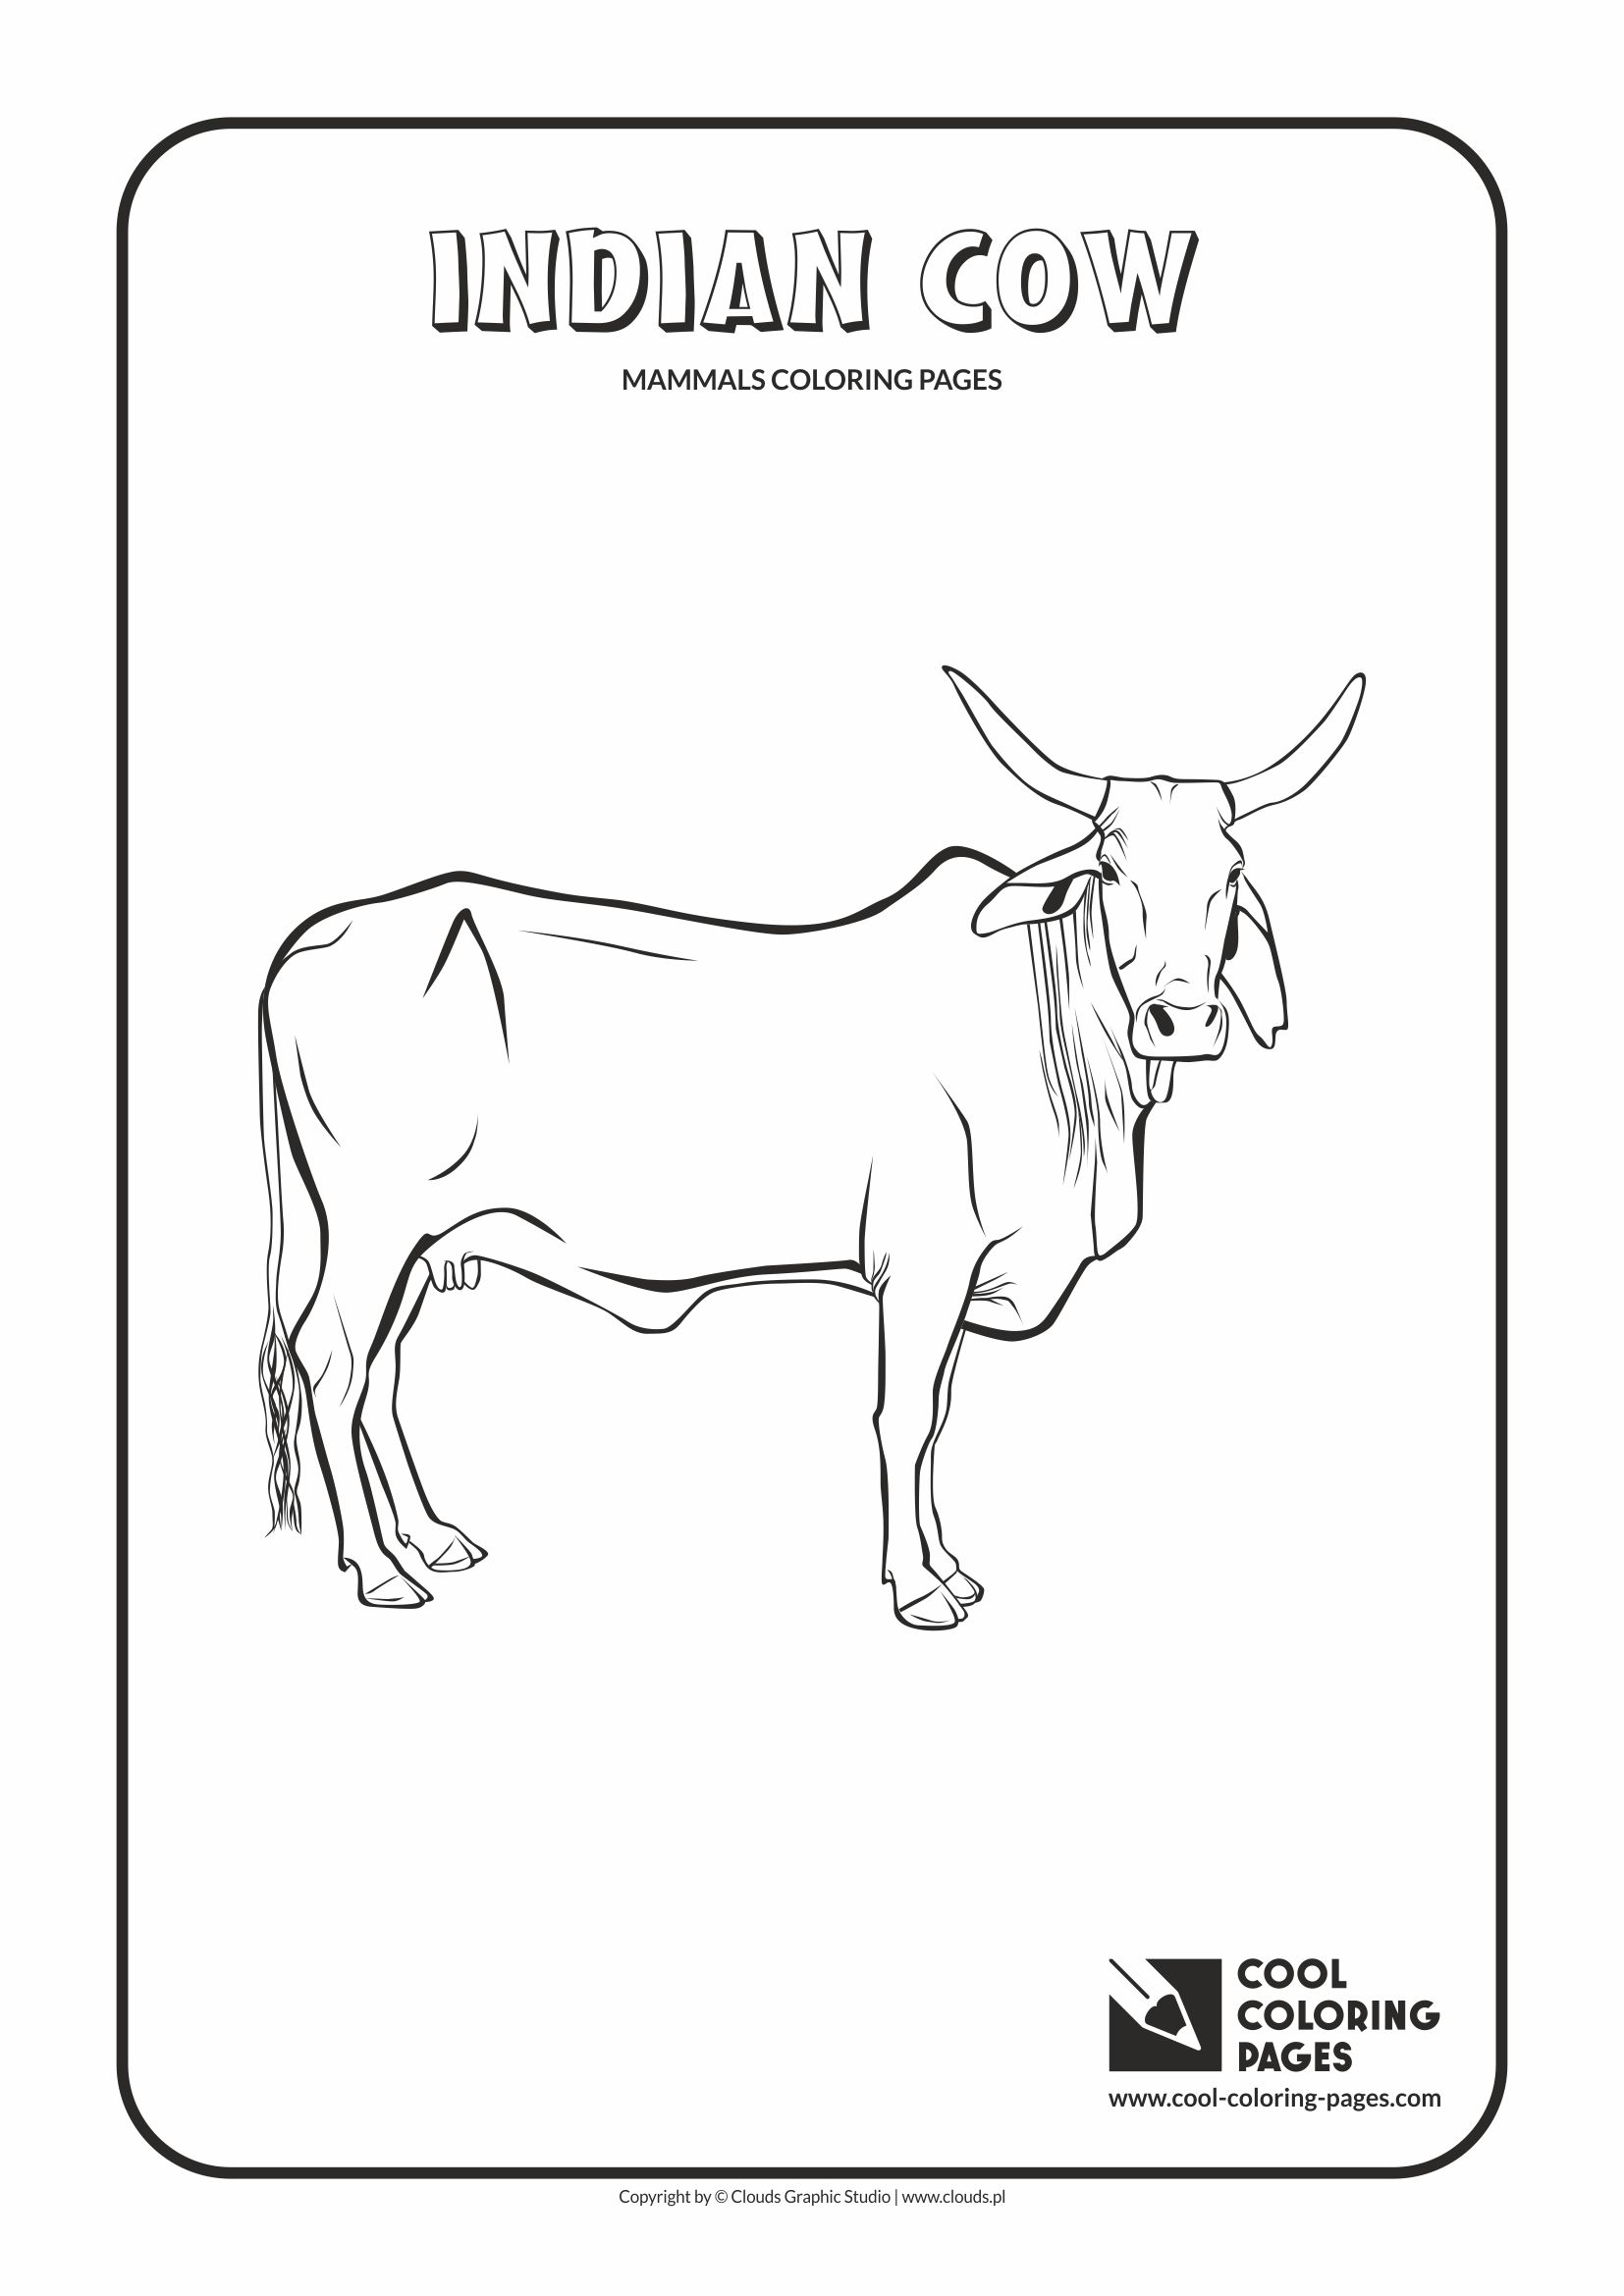 Cool Coloring Pages - Animals / Indian cow / Coloring page with indian cow